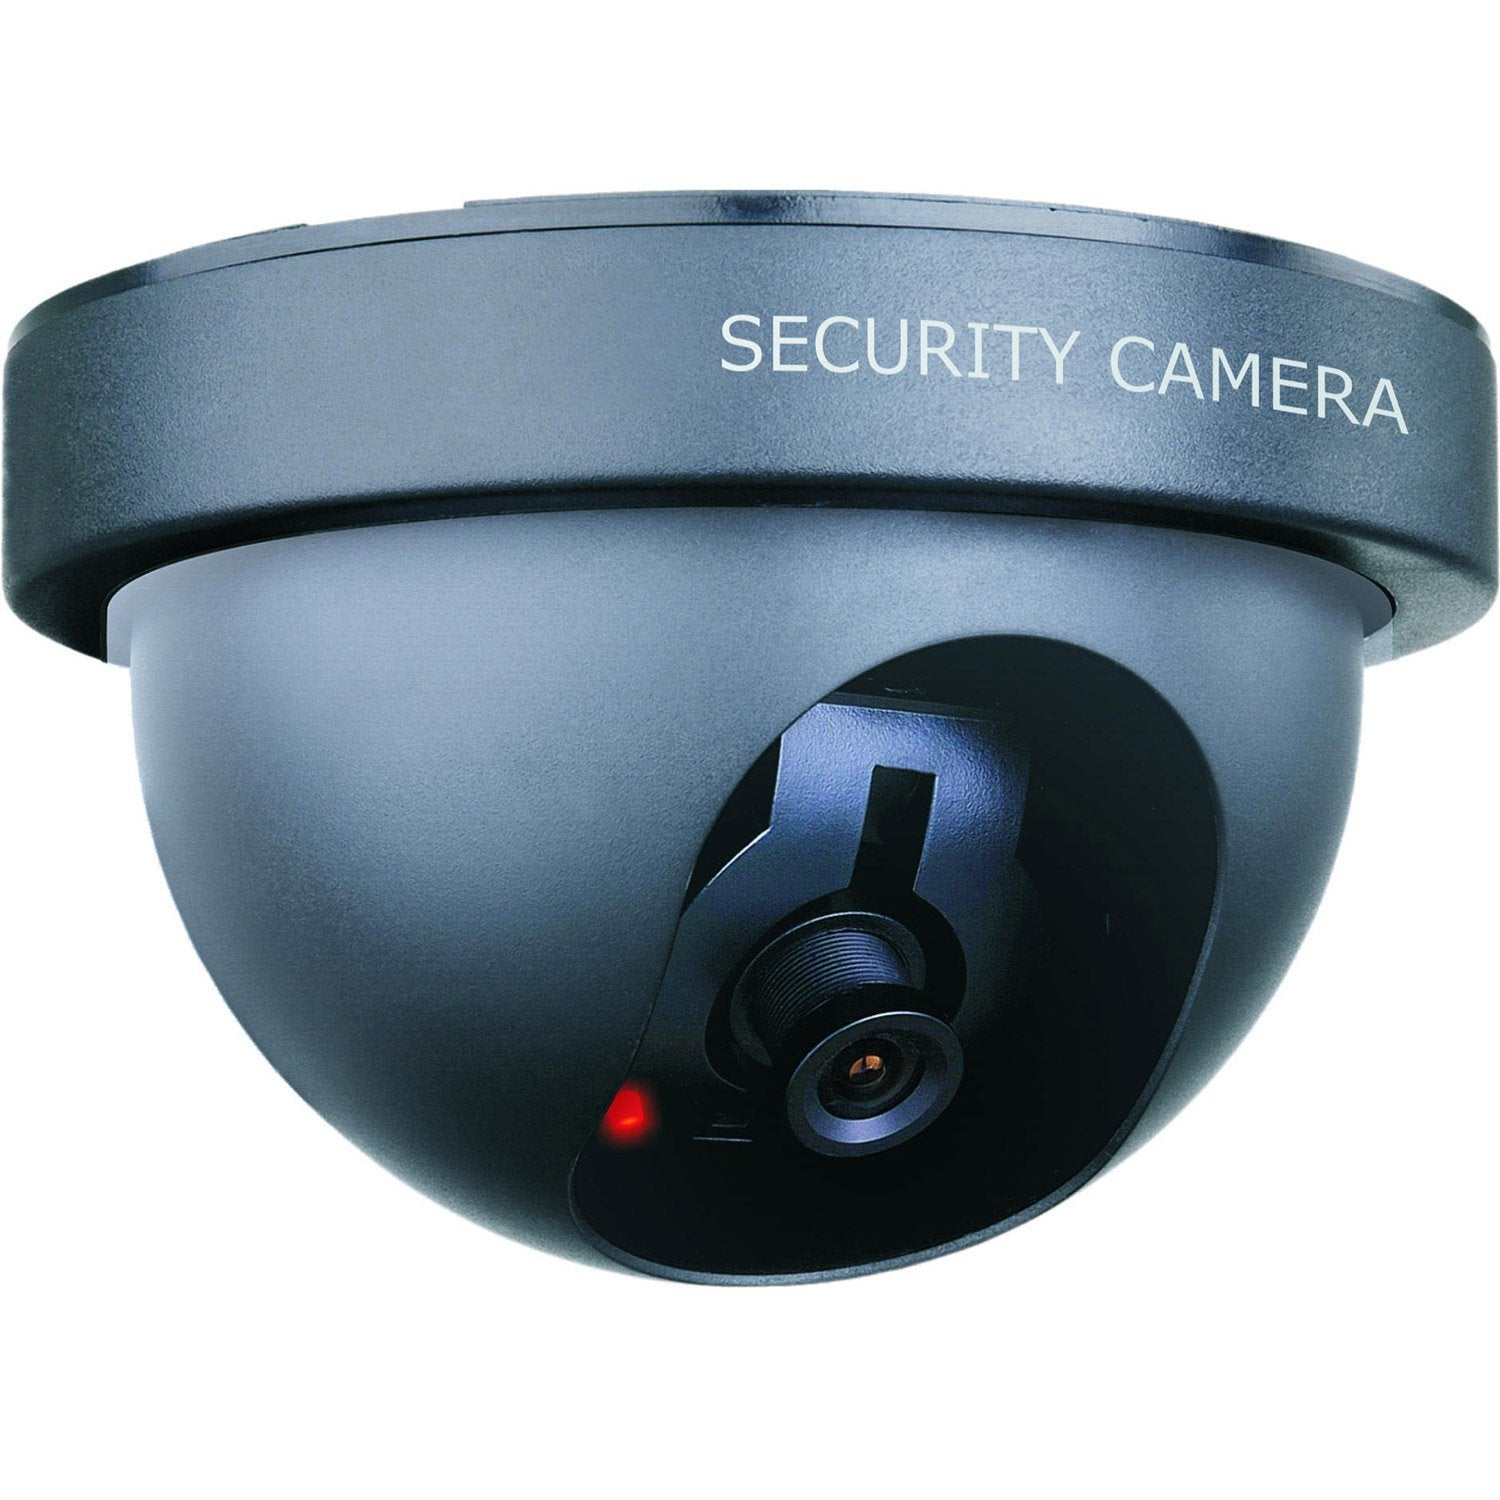 Cam ra factice avec led clignotante smartwares cs44dfr - Camera factice leroy merlin ...